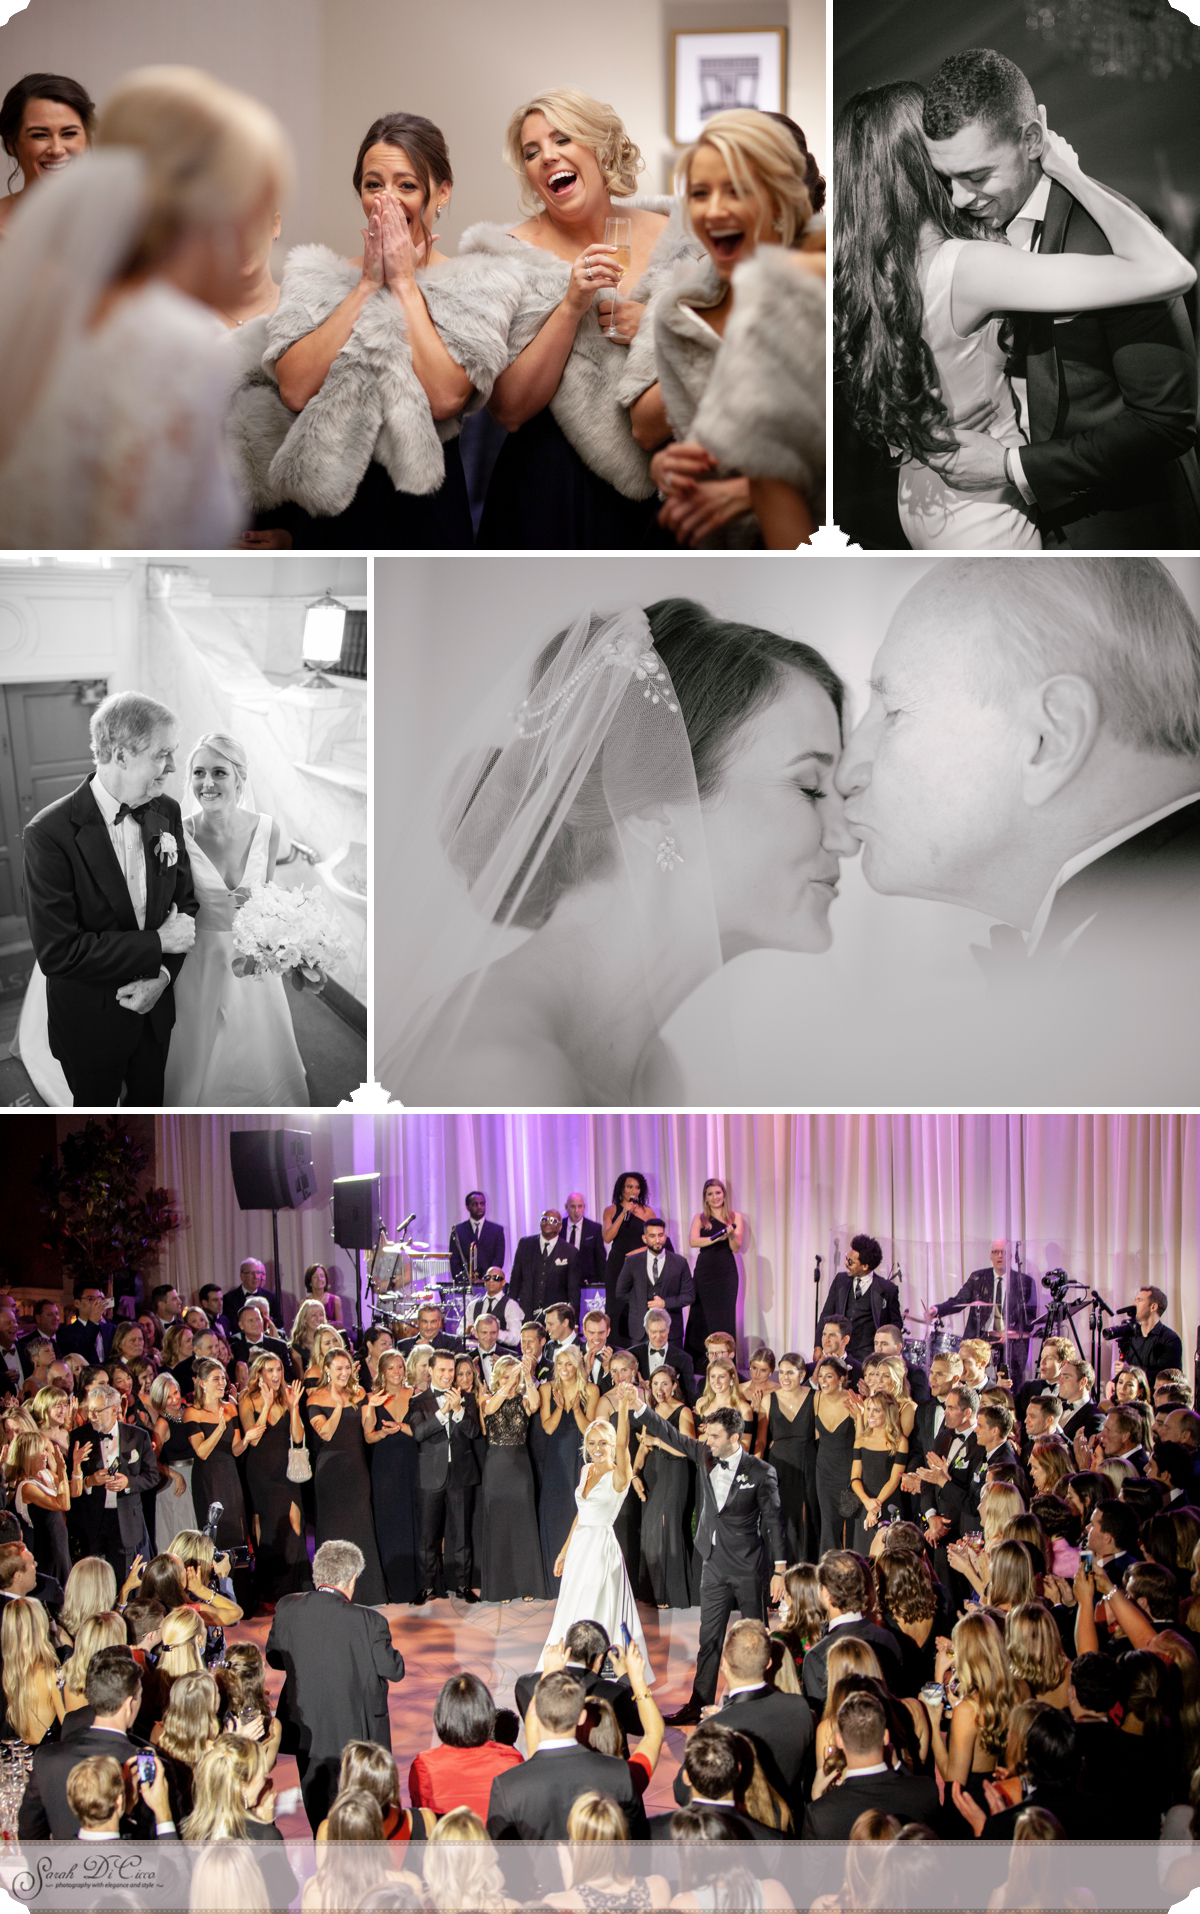 Wonderful Moments Sarah DiCicco Photography - Year in Review 2018